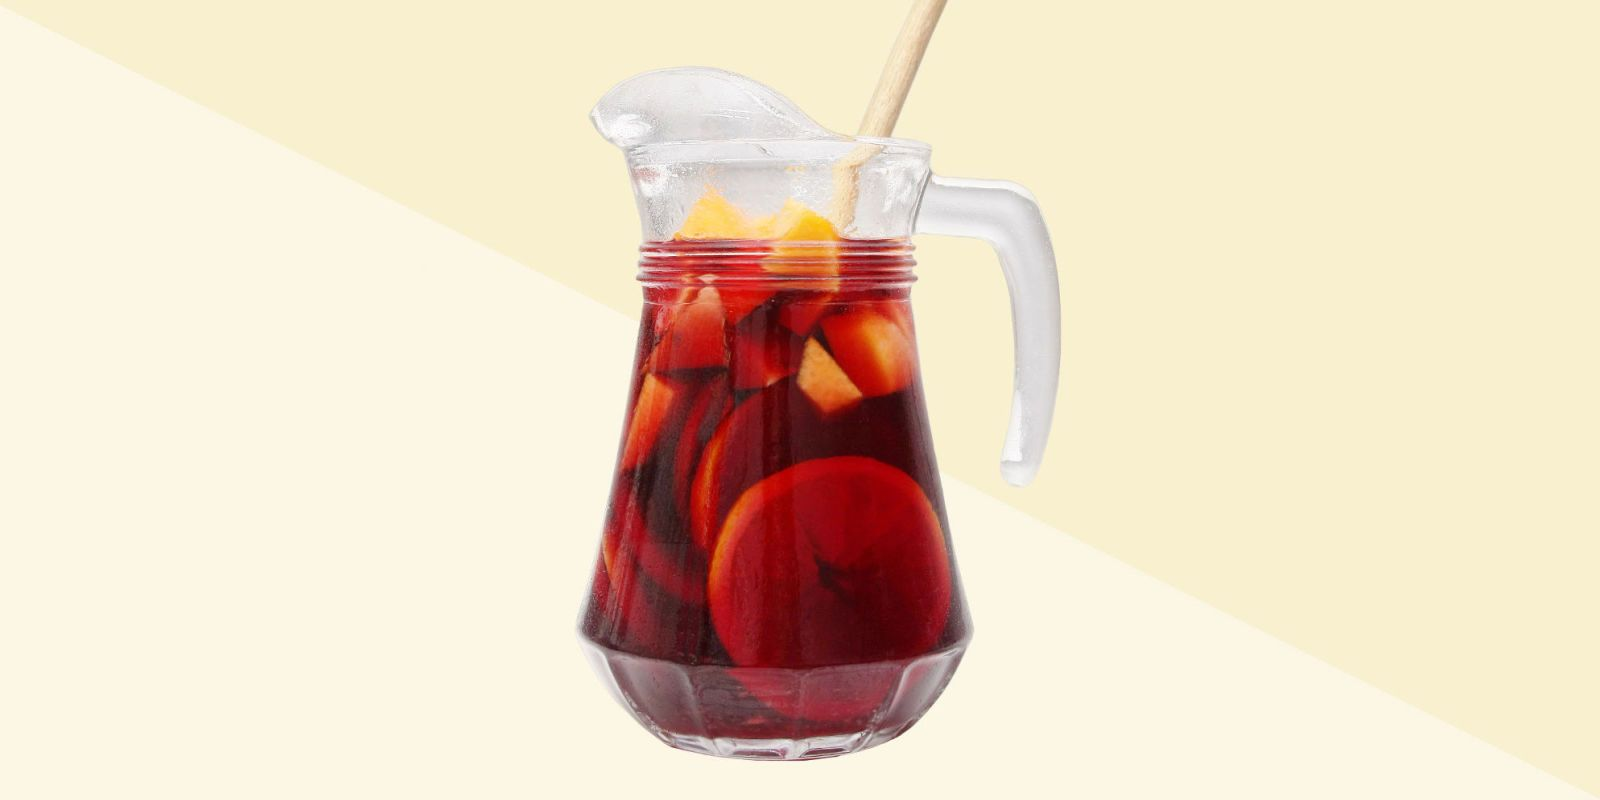 8 Easy Sangria Recipes to Break Out at Your Next Summer Party